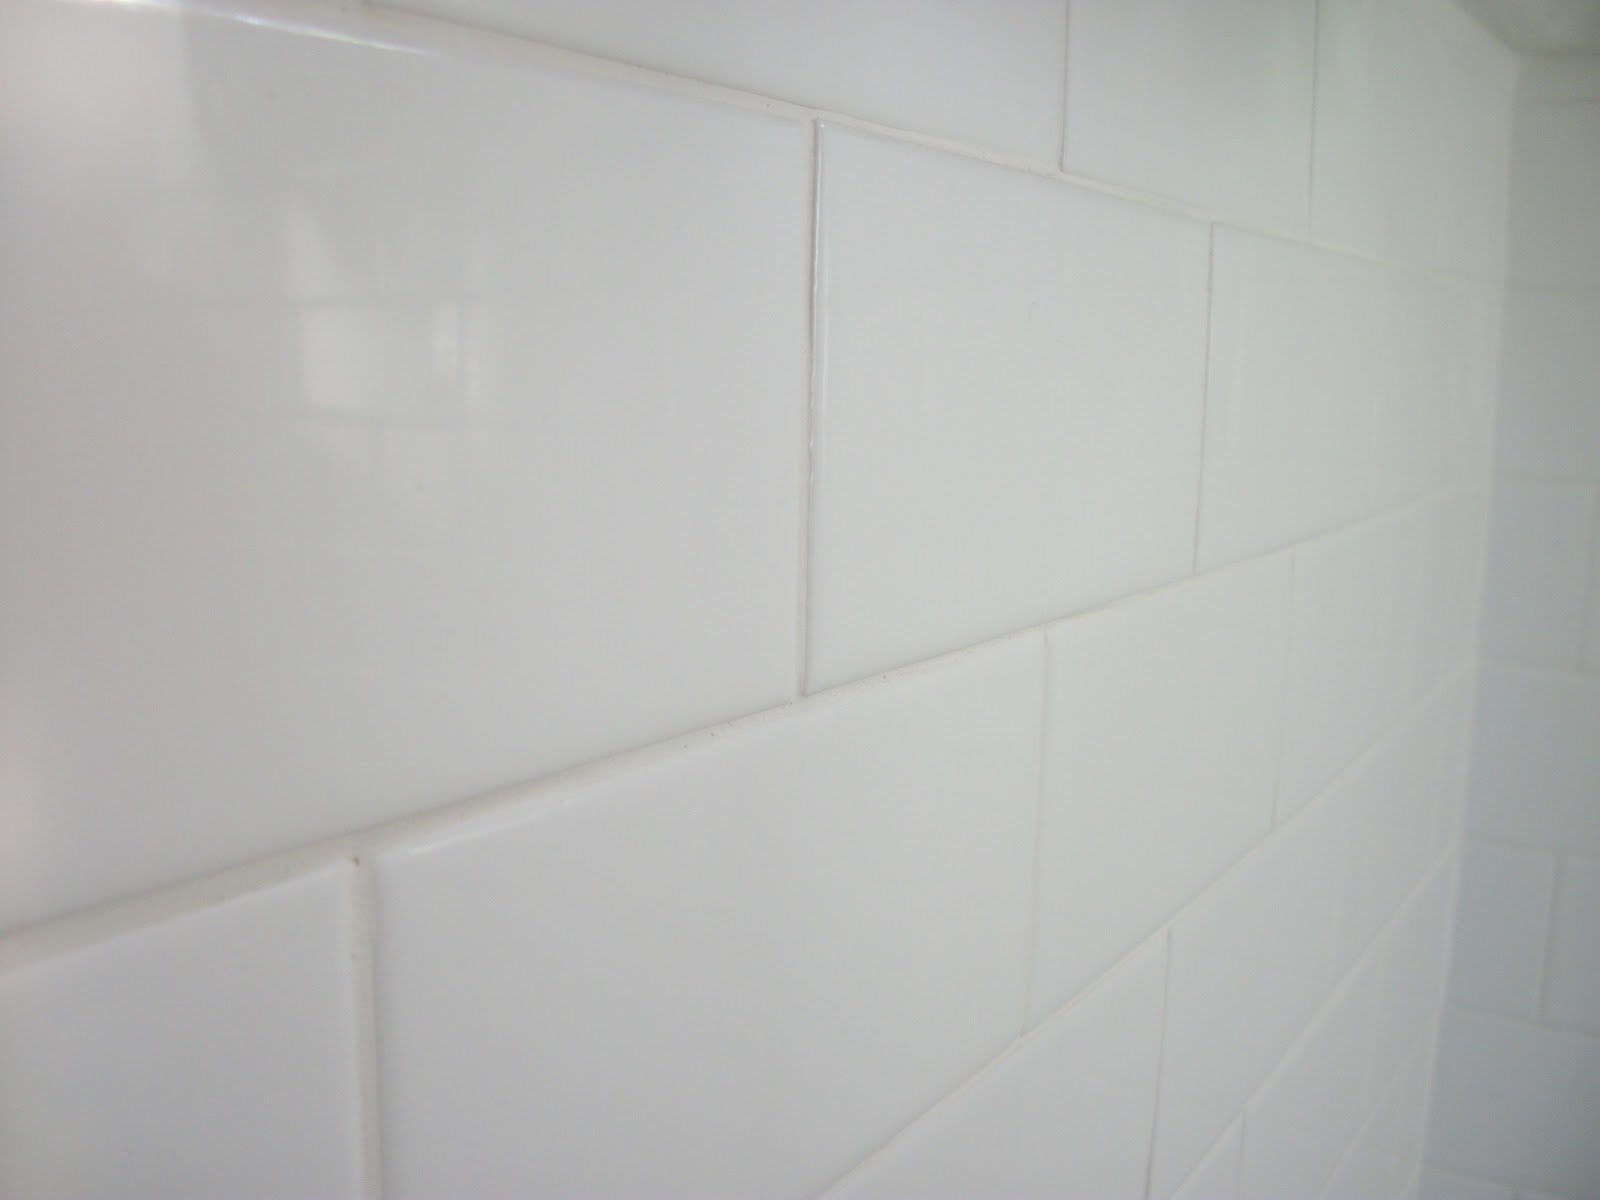 White Subway Tile Texture Upstairs Bath Remodel